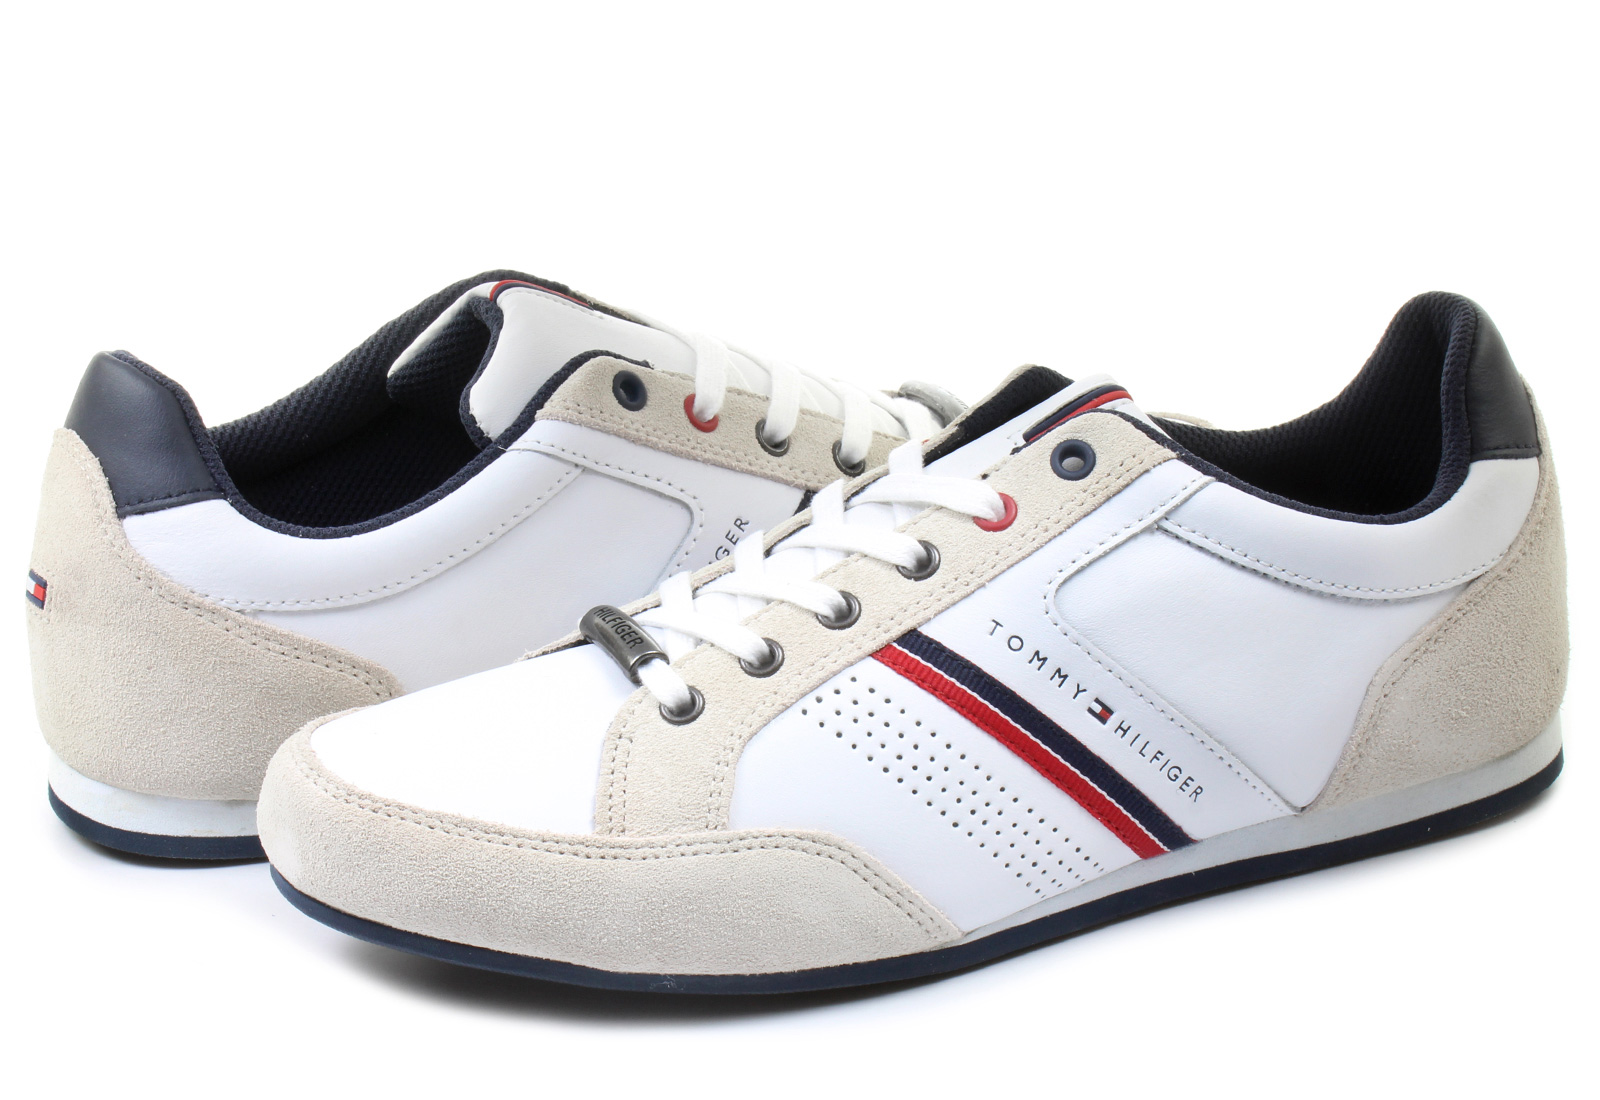 1d009d6798034 Tommy Hilfiger Shoes - Ross 3c - 14f-7917-100 - Online shop for ...